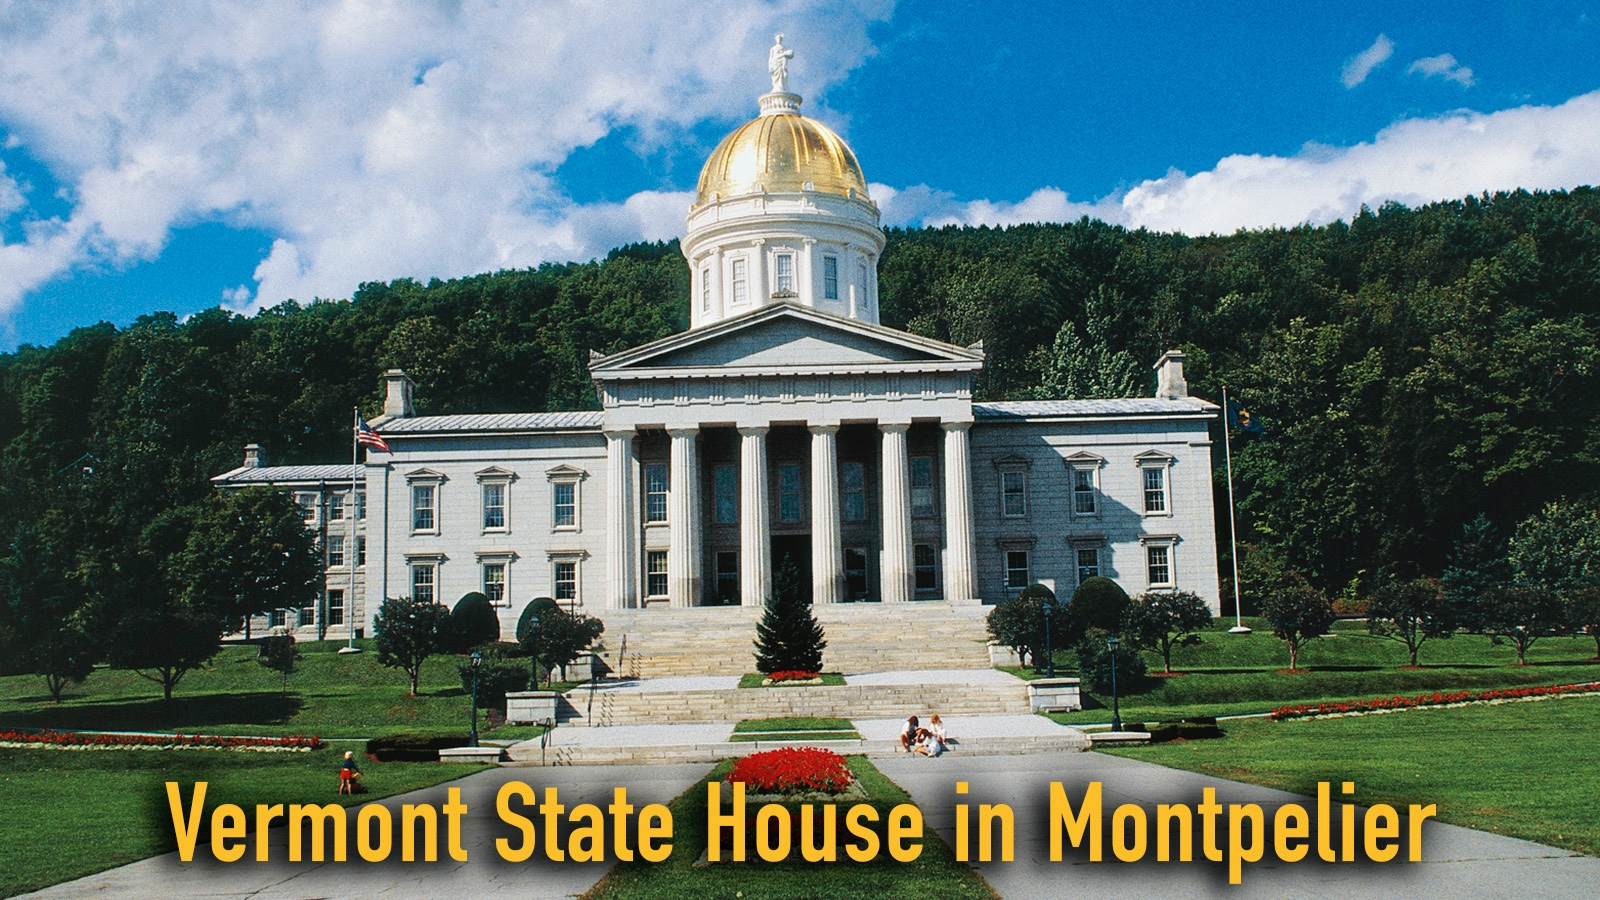 Vermont State House in Montpelier 2016